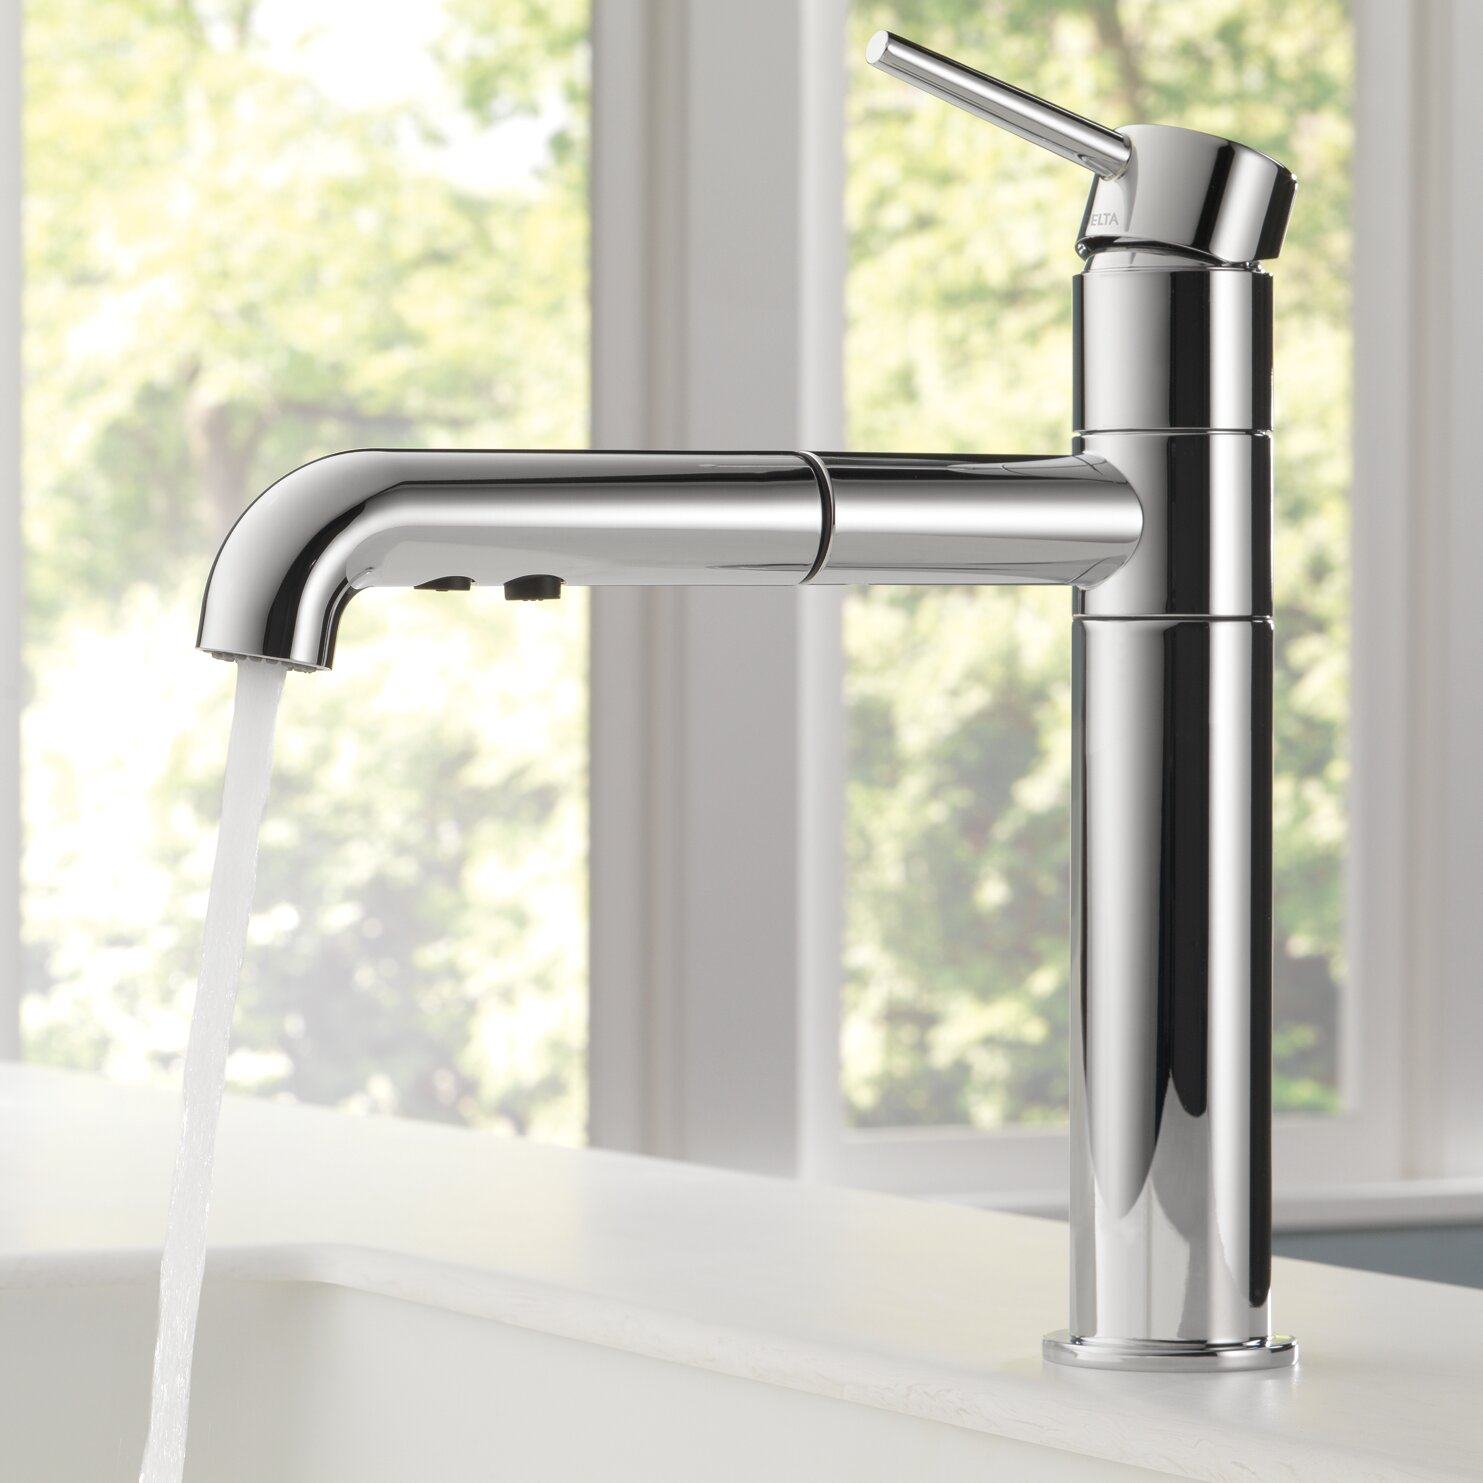 Reviews Of Kitchen Faucets Delta Trinsicr Kitchen Single Handle Pull Out Standard Kitchen